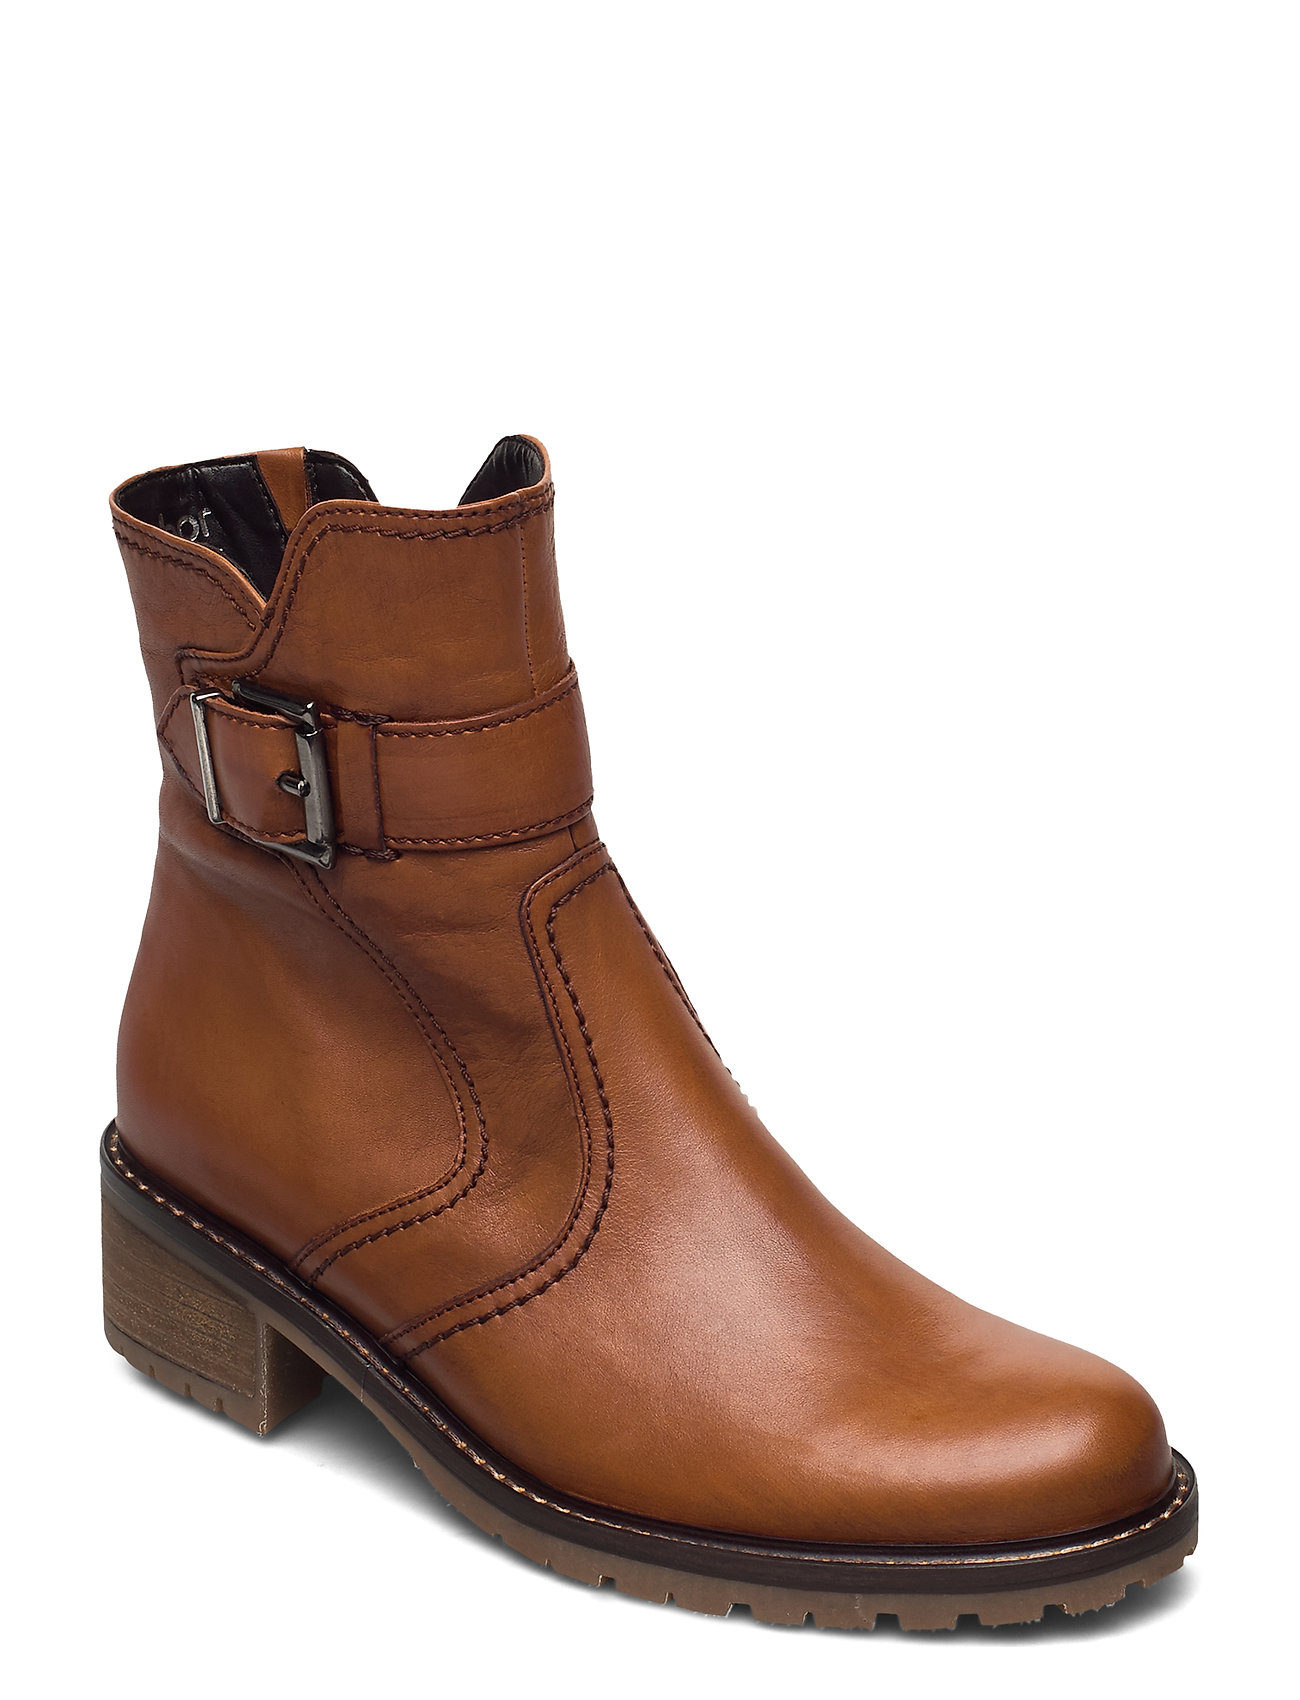 Image of Ankle Boot Shoes Boots Ankle Boots Ankle Boot - Flat Brun Gabor (3453534619)